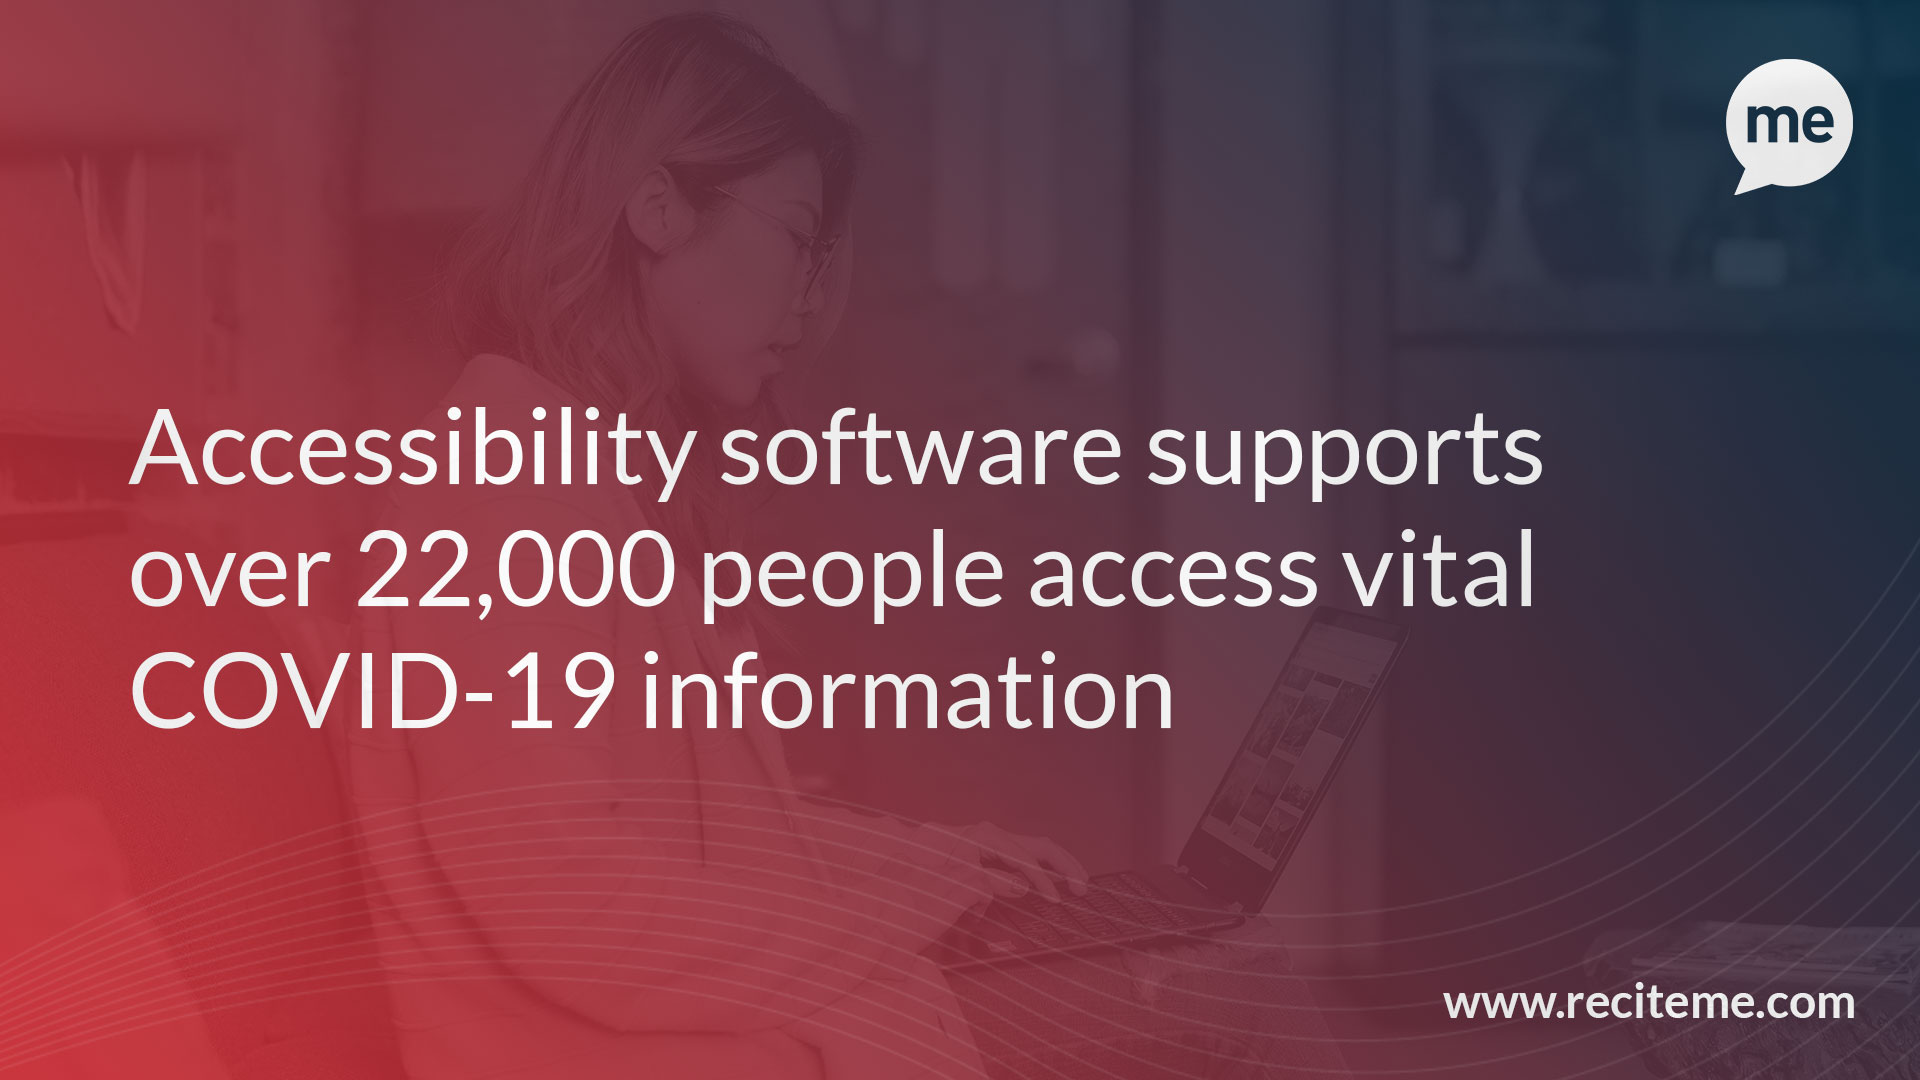 Accessibility software supports over 22,000 people access vital COVID-19 information